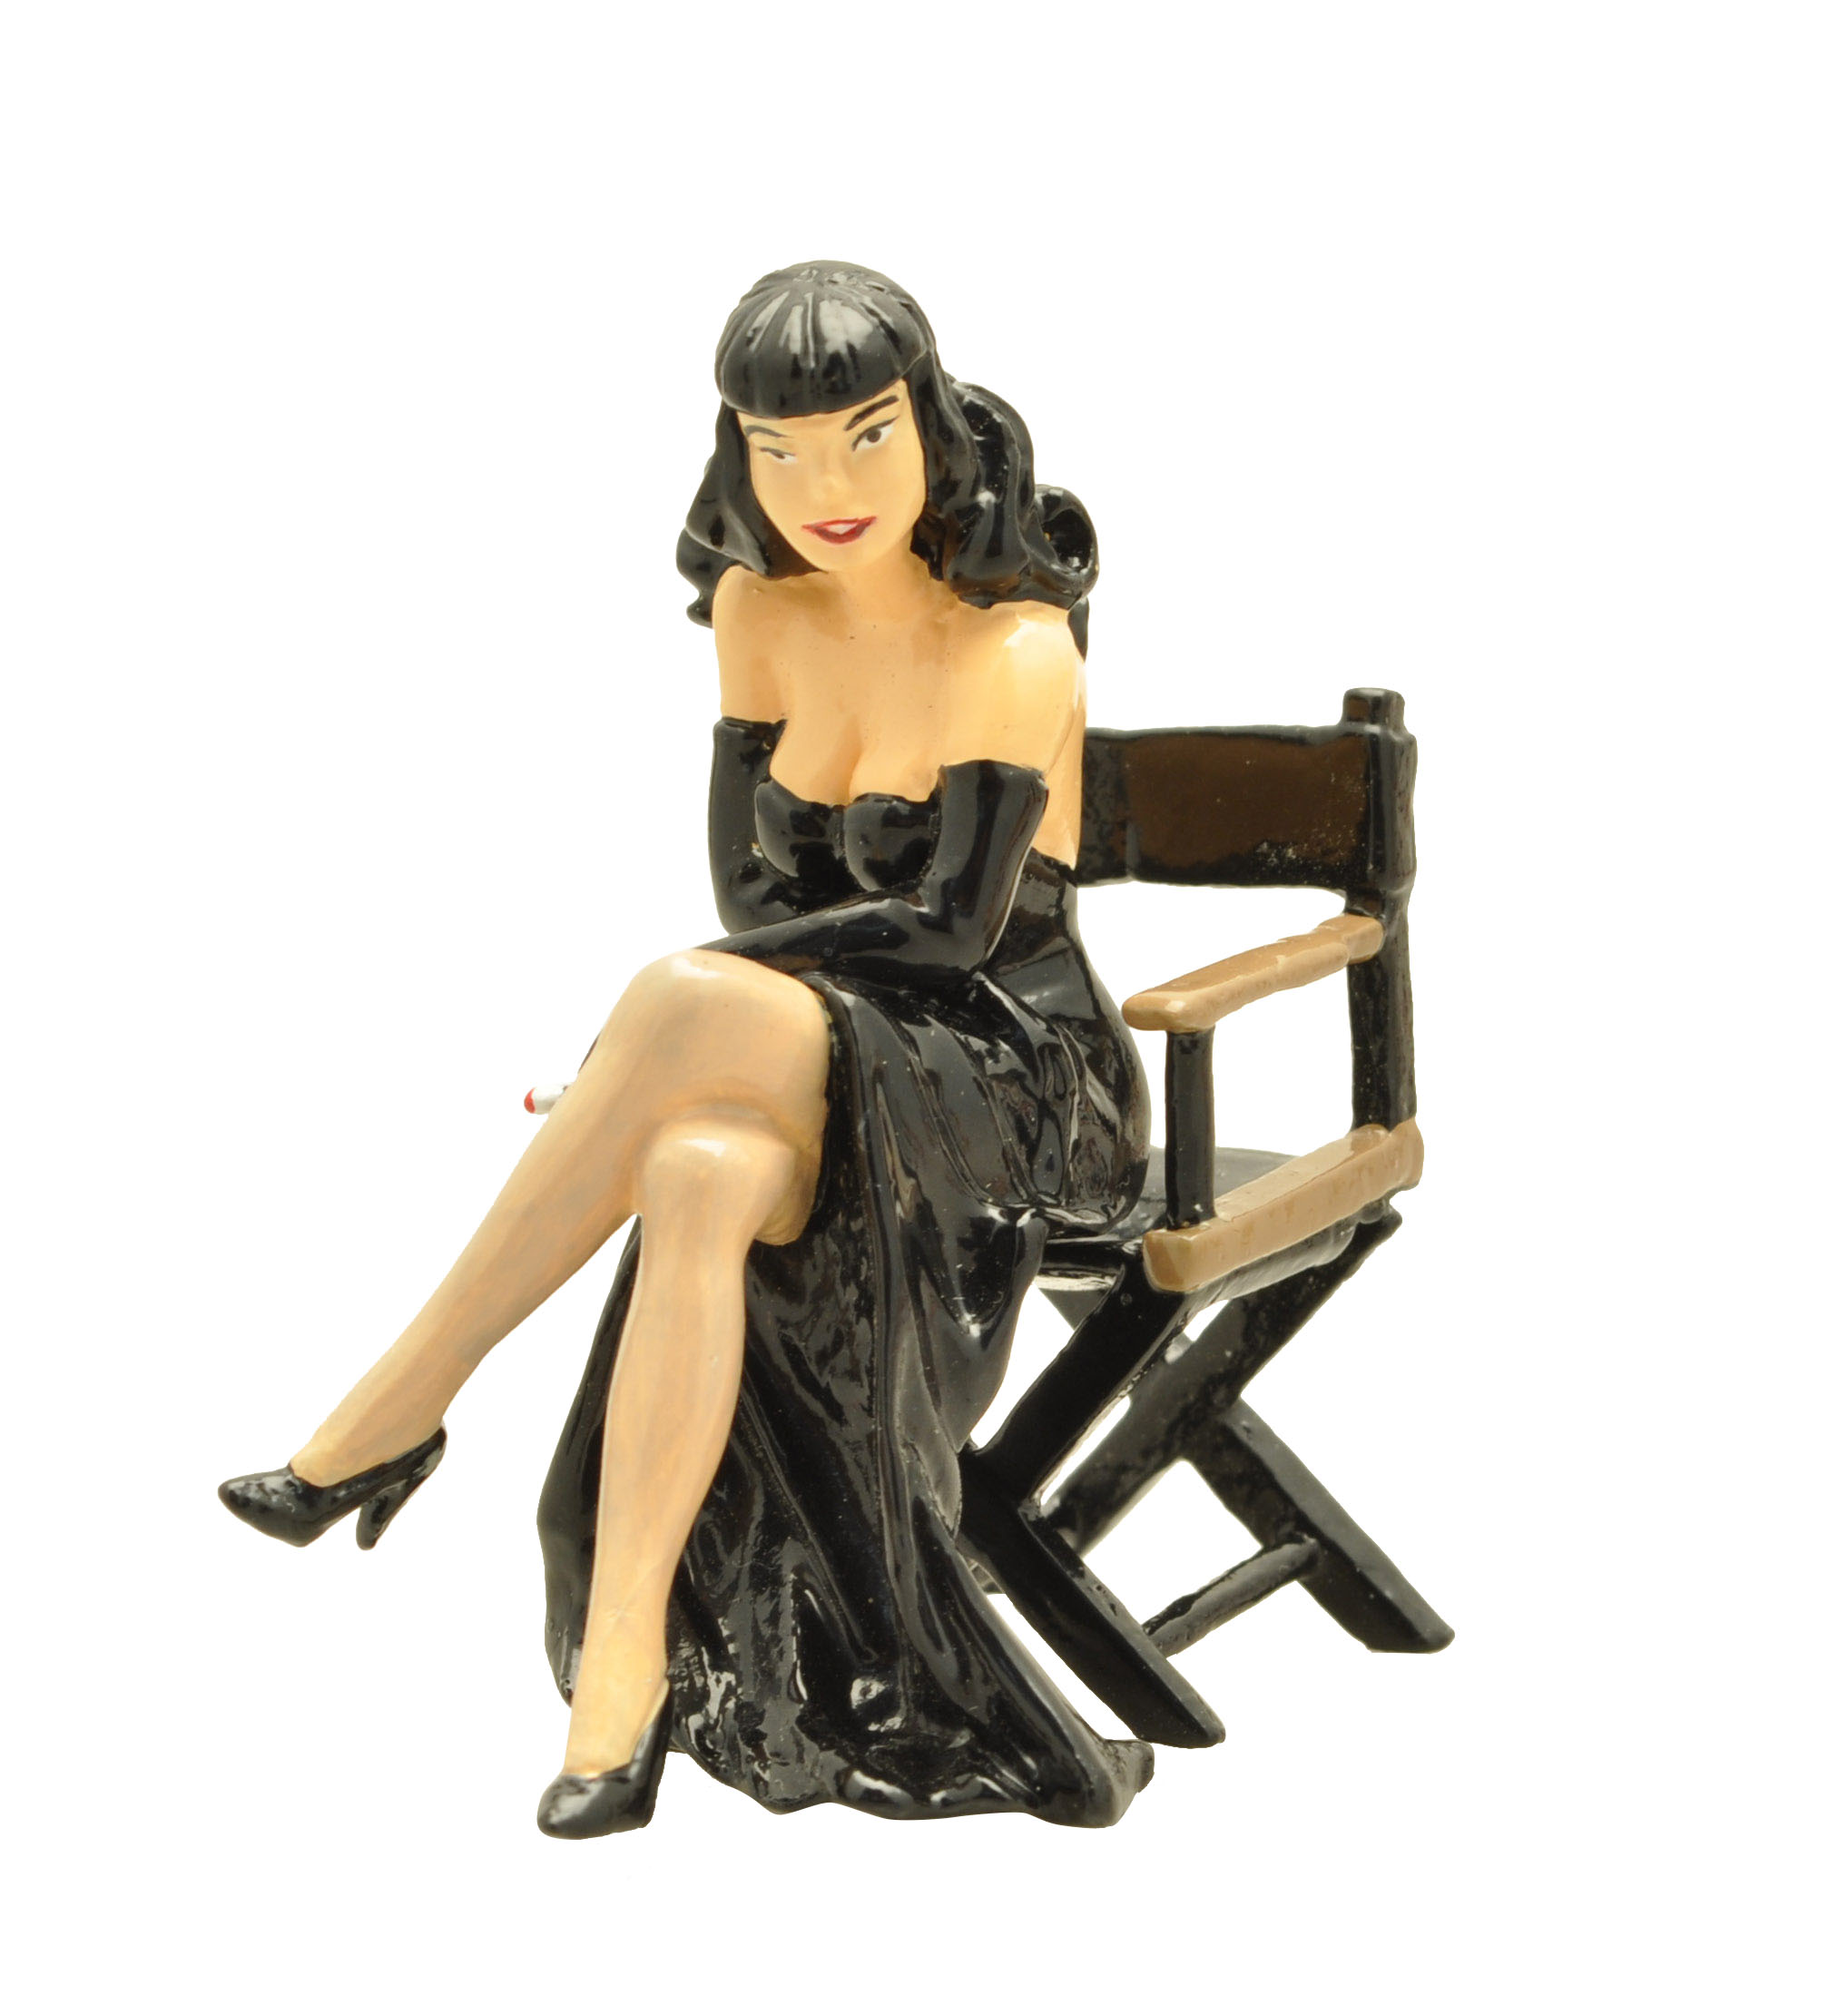 figurine pin up berthet fauteuil metteur en sc ne pixi origine 05332